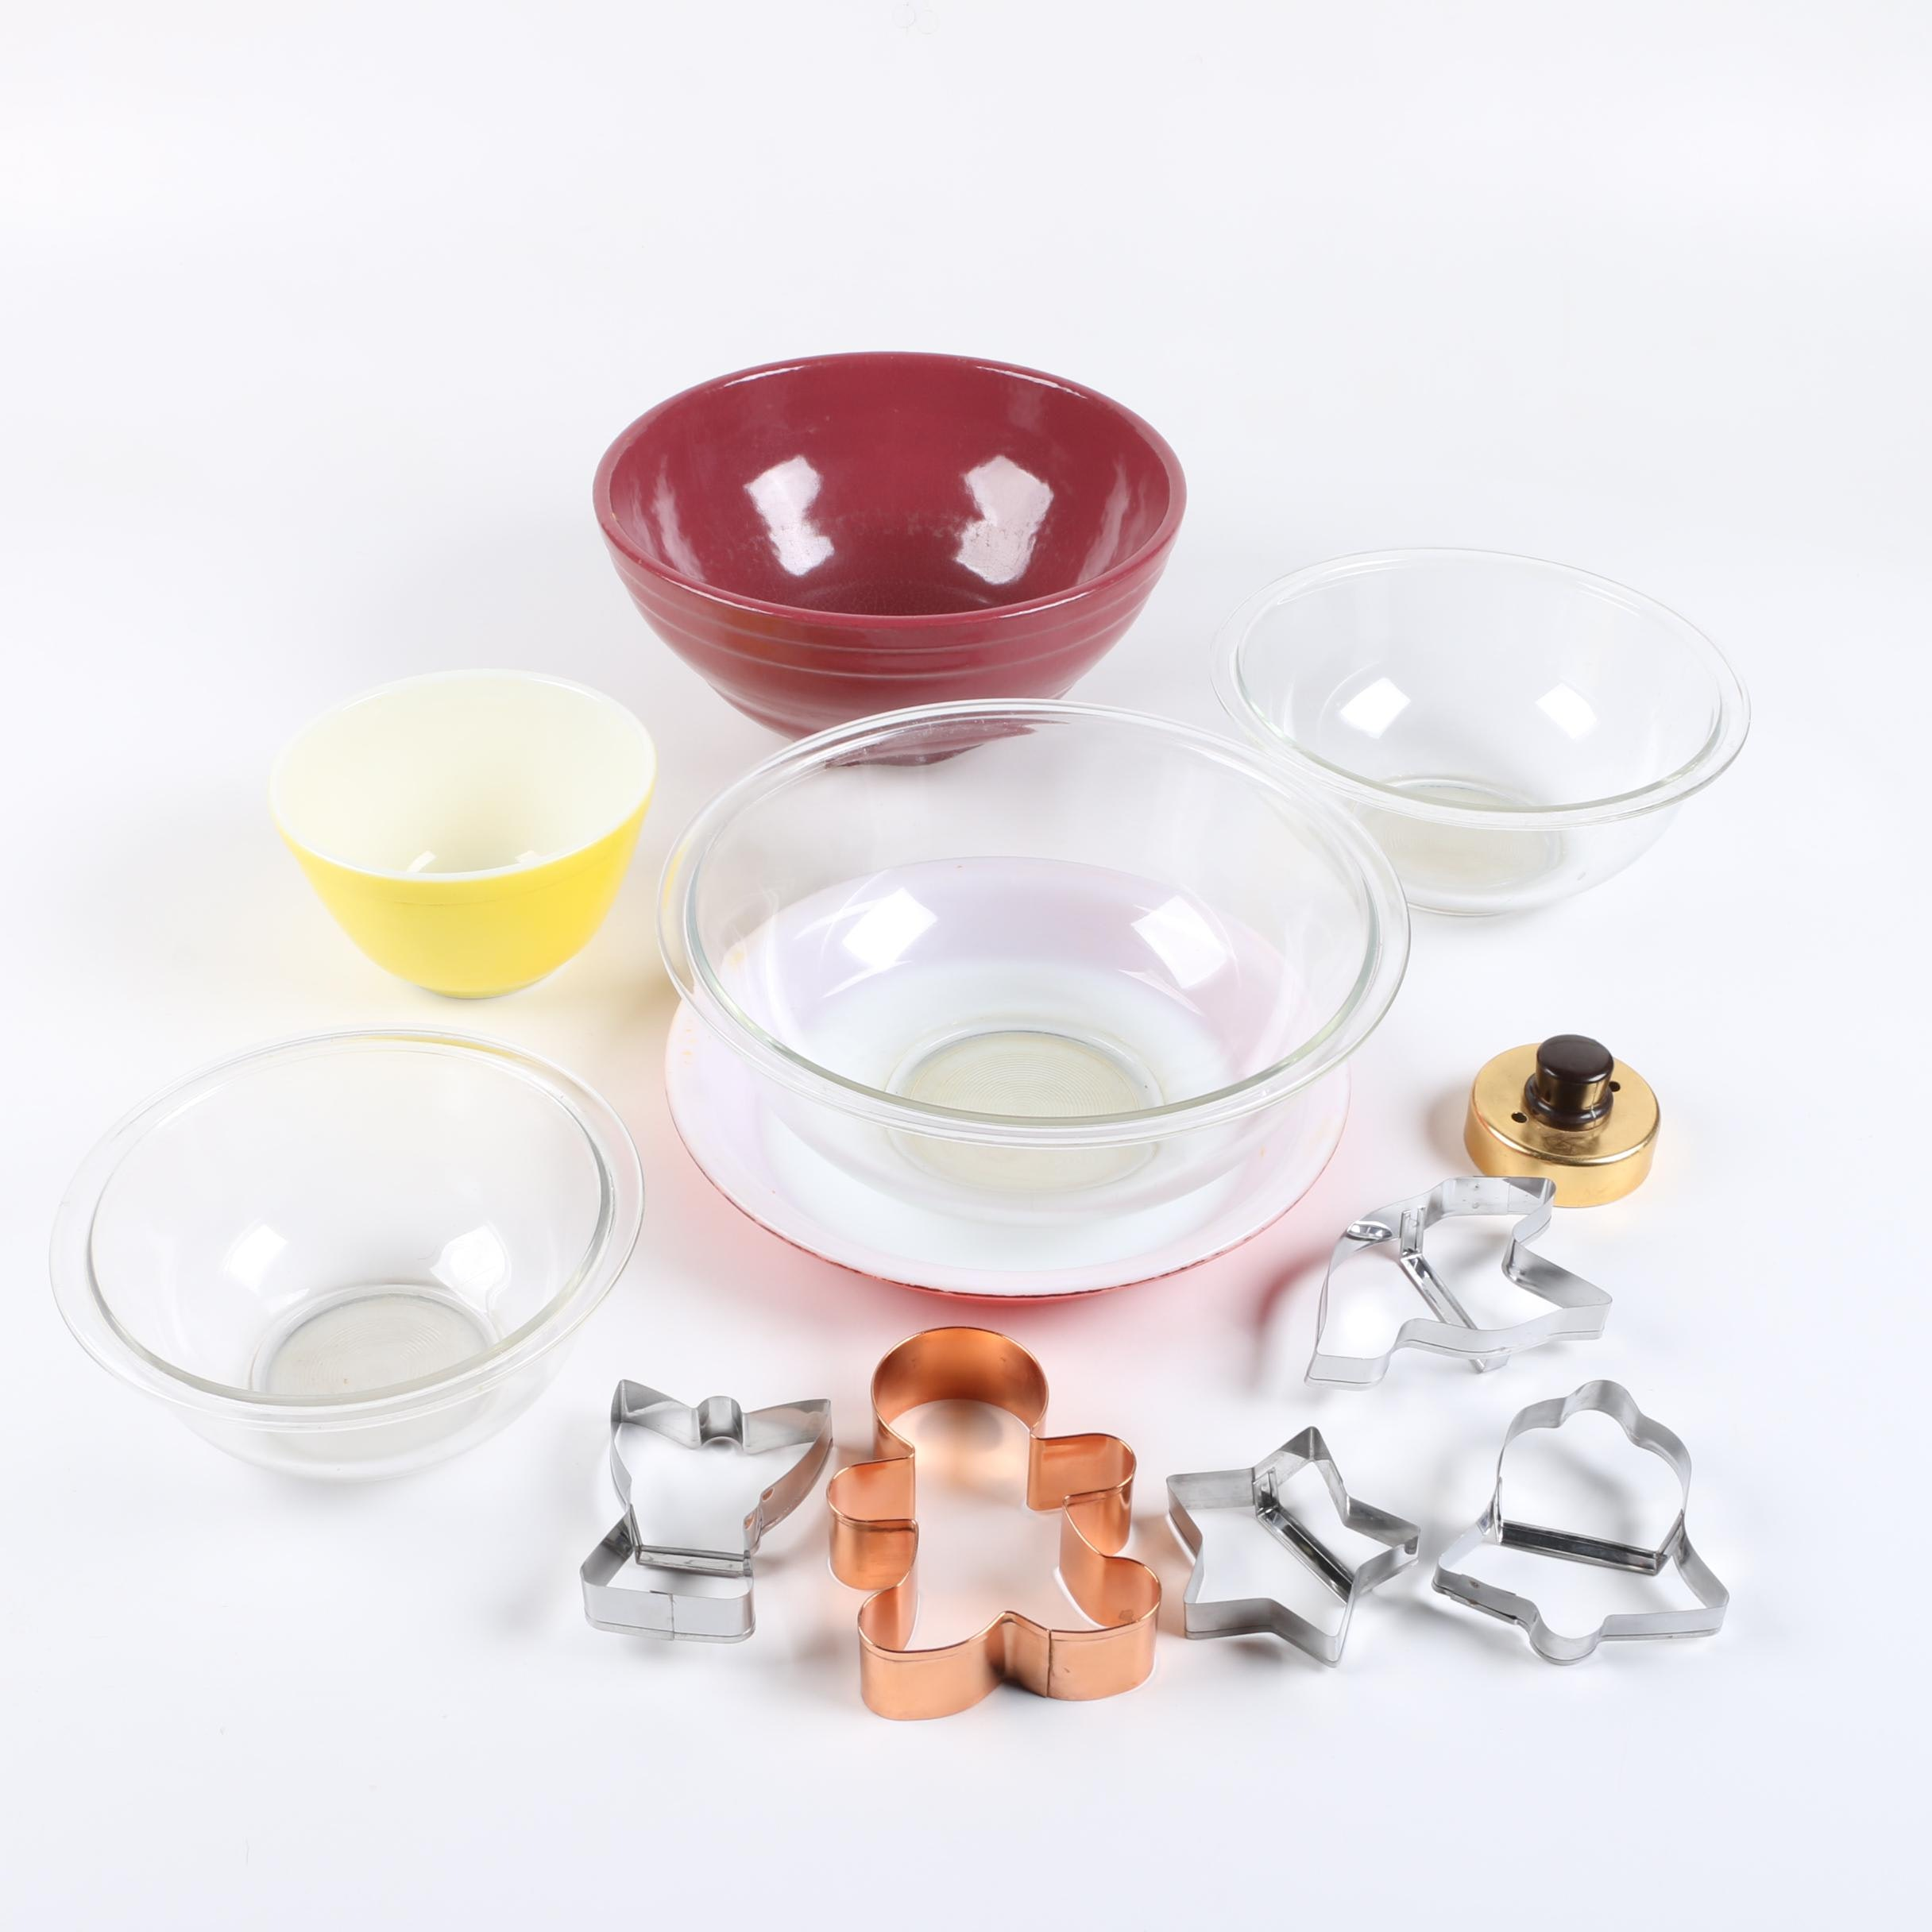 Pyrex Mixing Bowls and Cookie Cutters